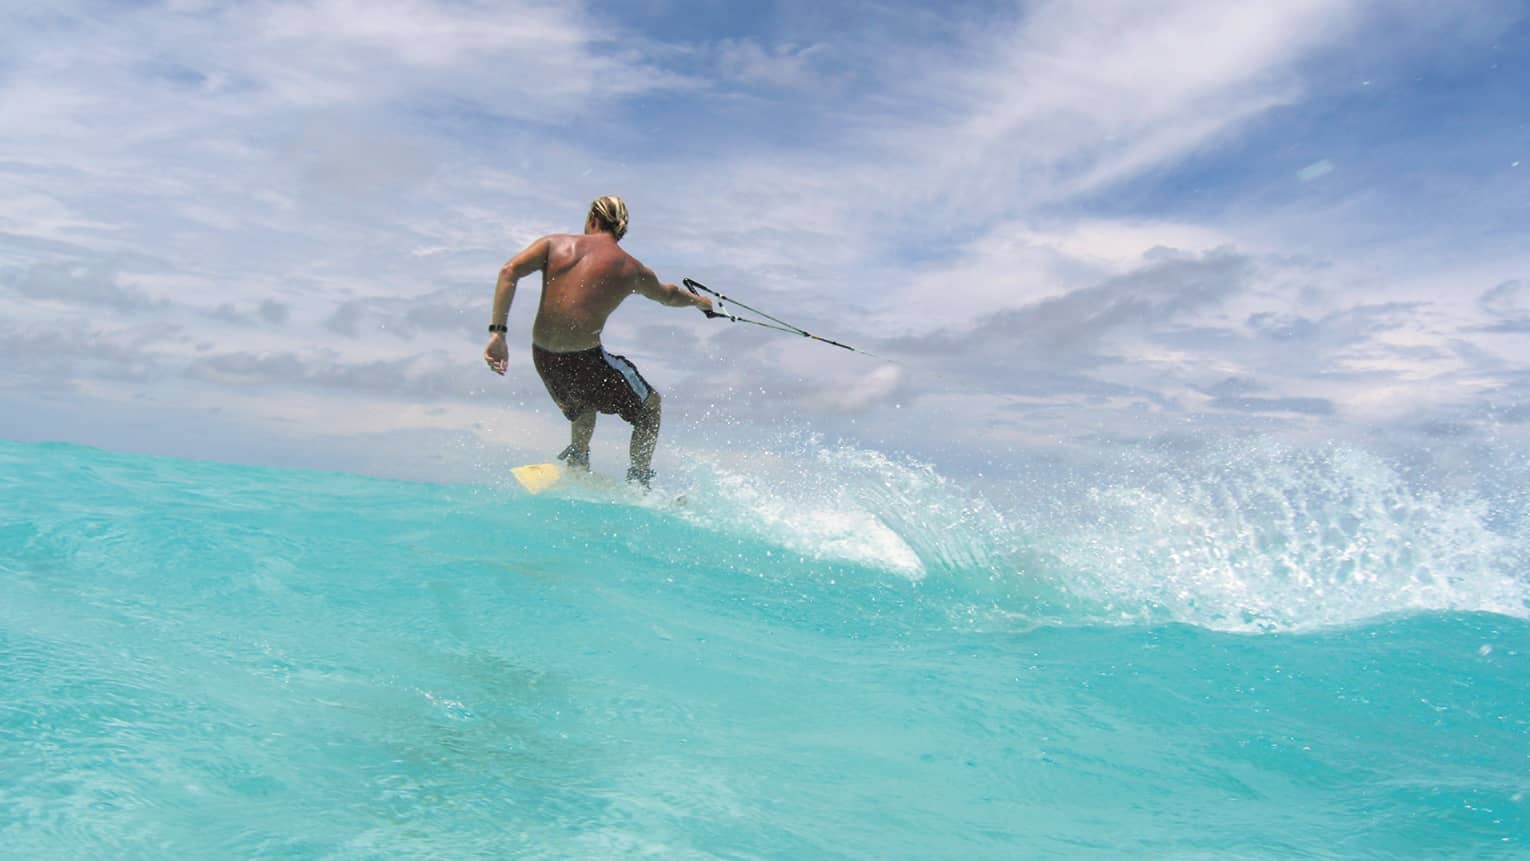 Man holds handle, wakeboards on turquoise wave in ocean